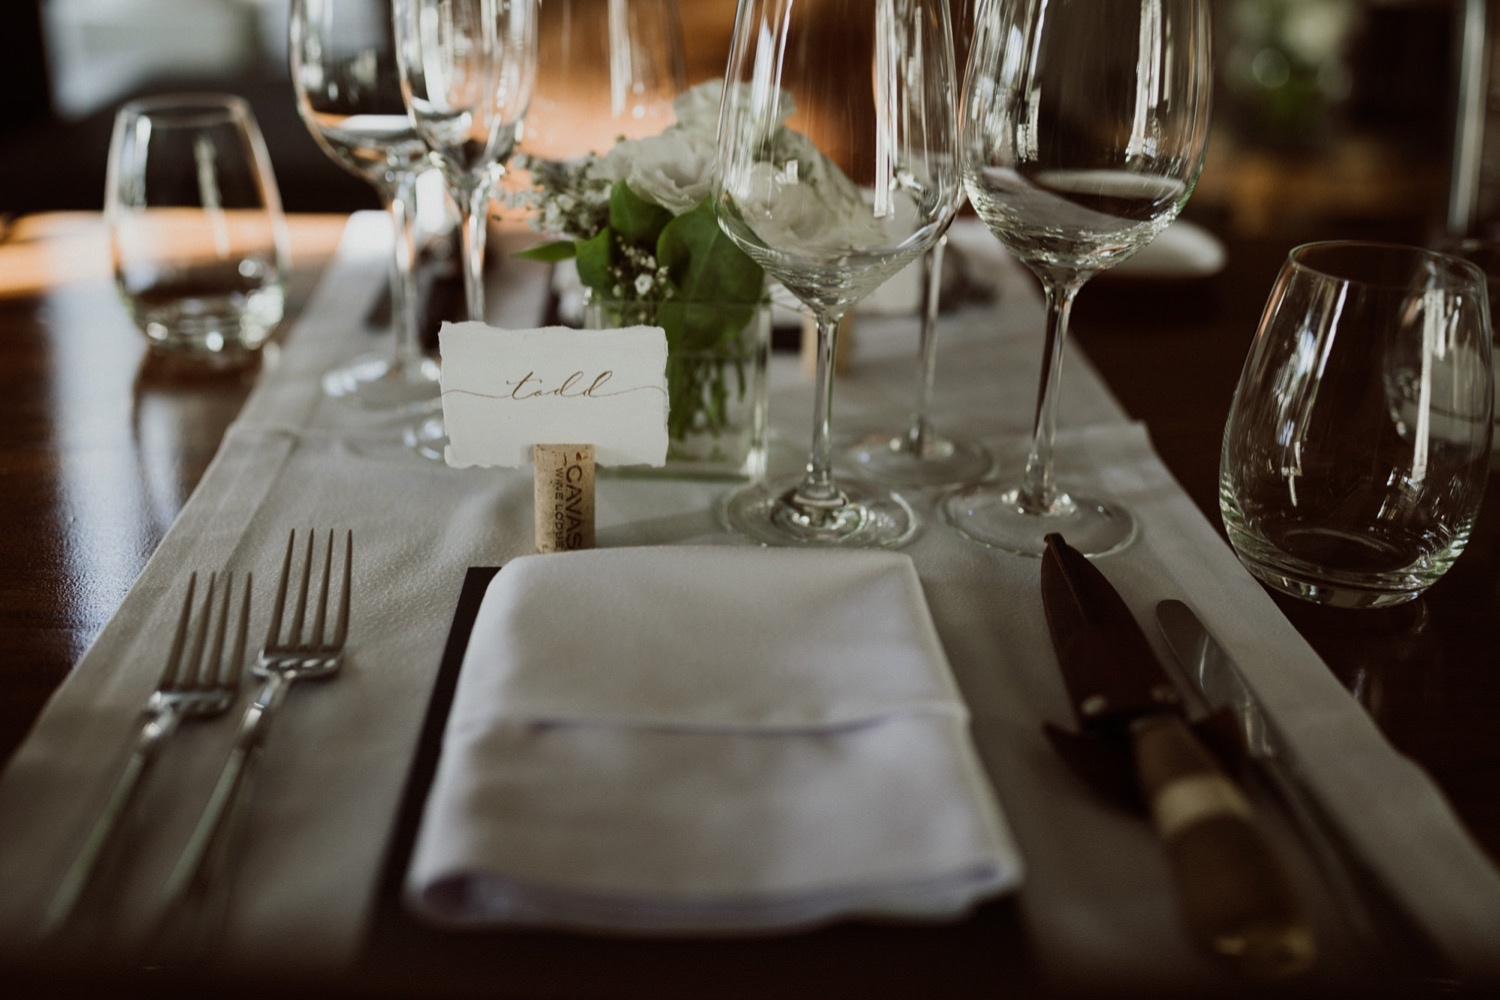 085_place_markers_wedding_table_reception.jpg